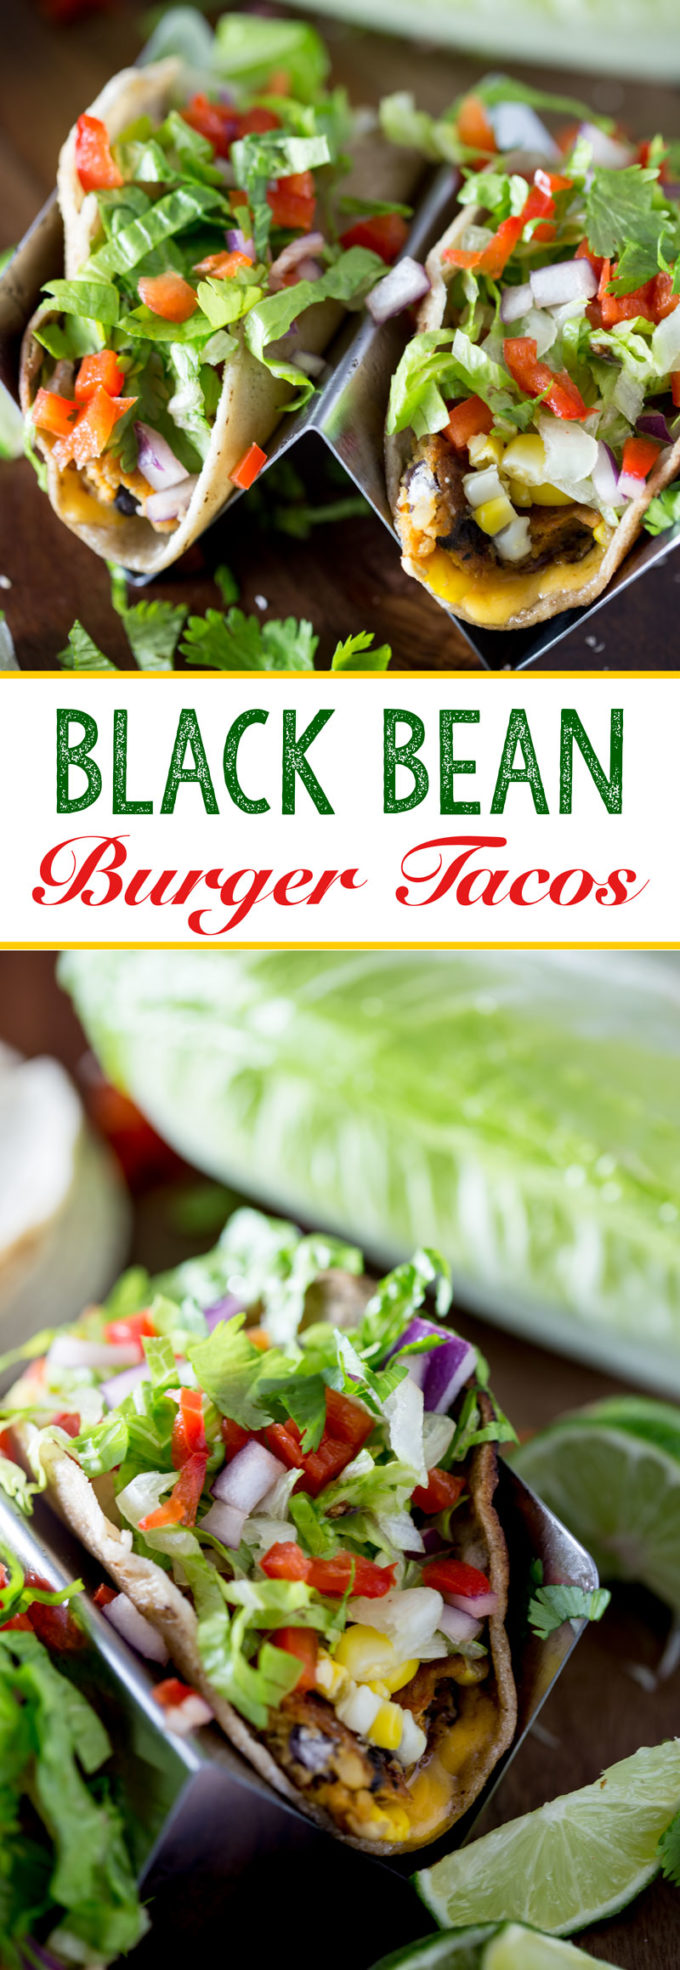 Chipotle Black bean burgers made into vegetarian tacos for an easy weeknight meal